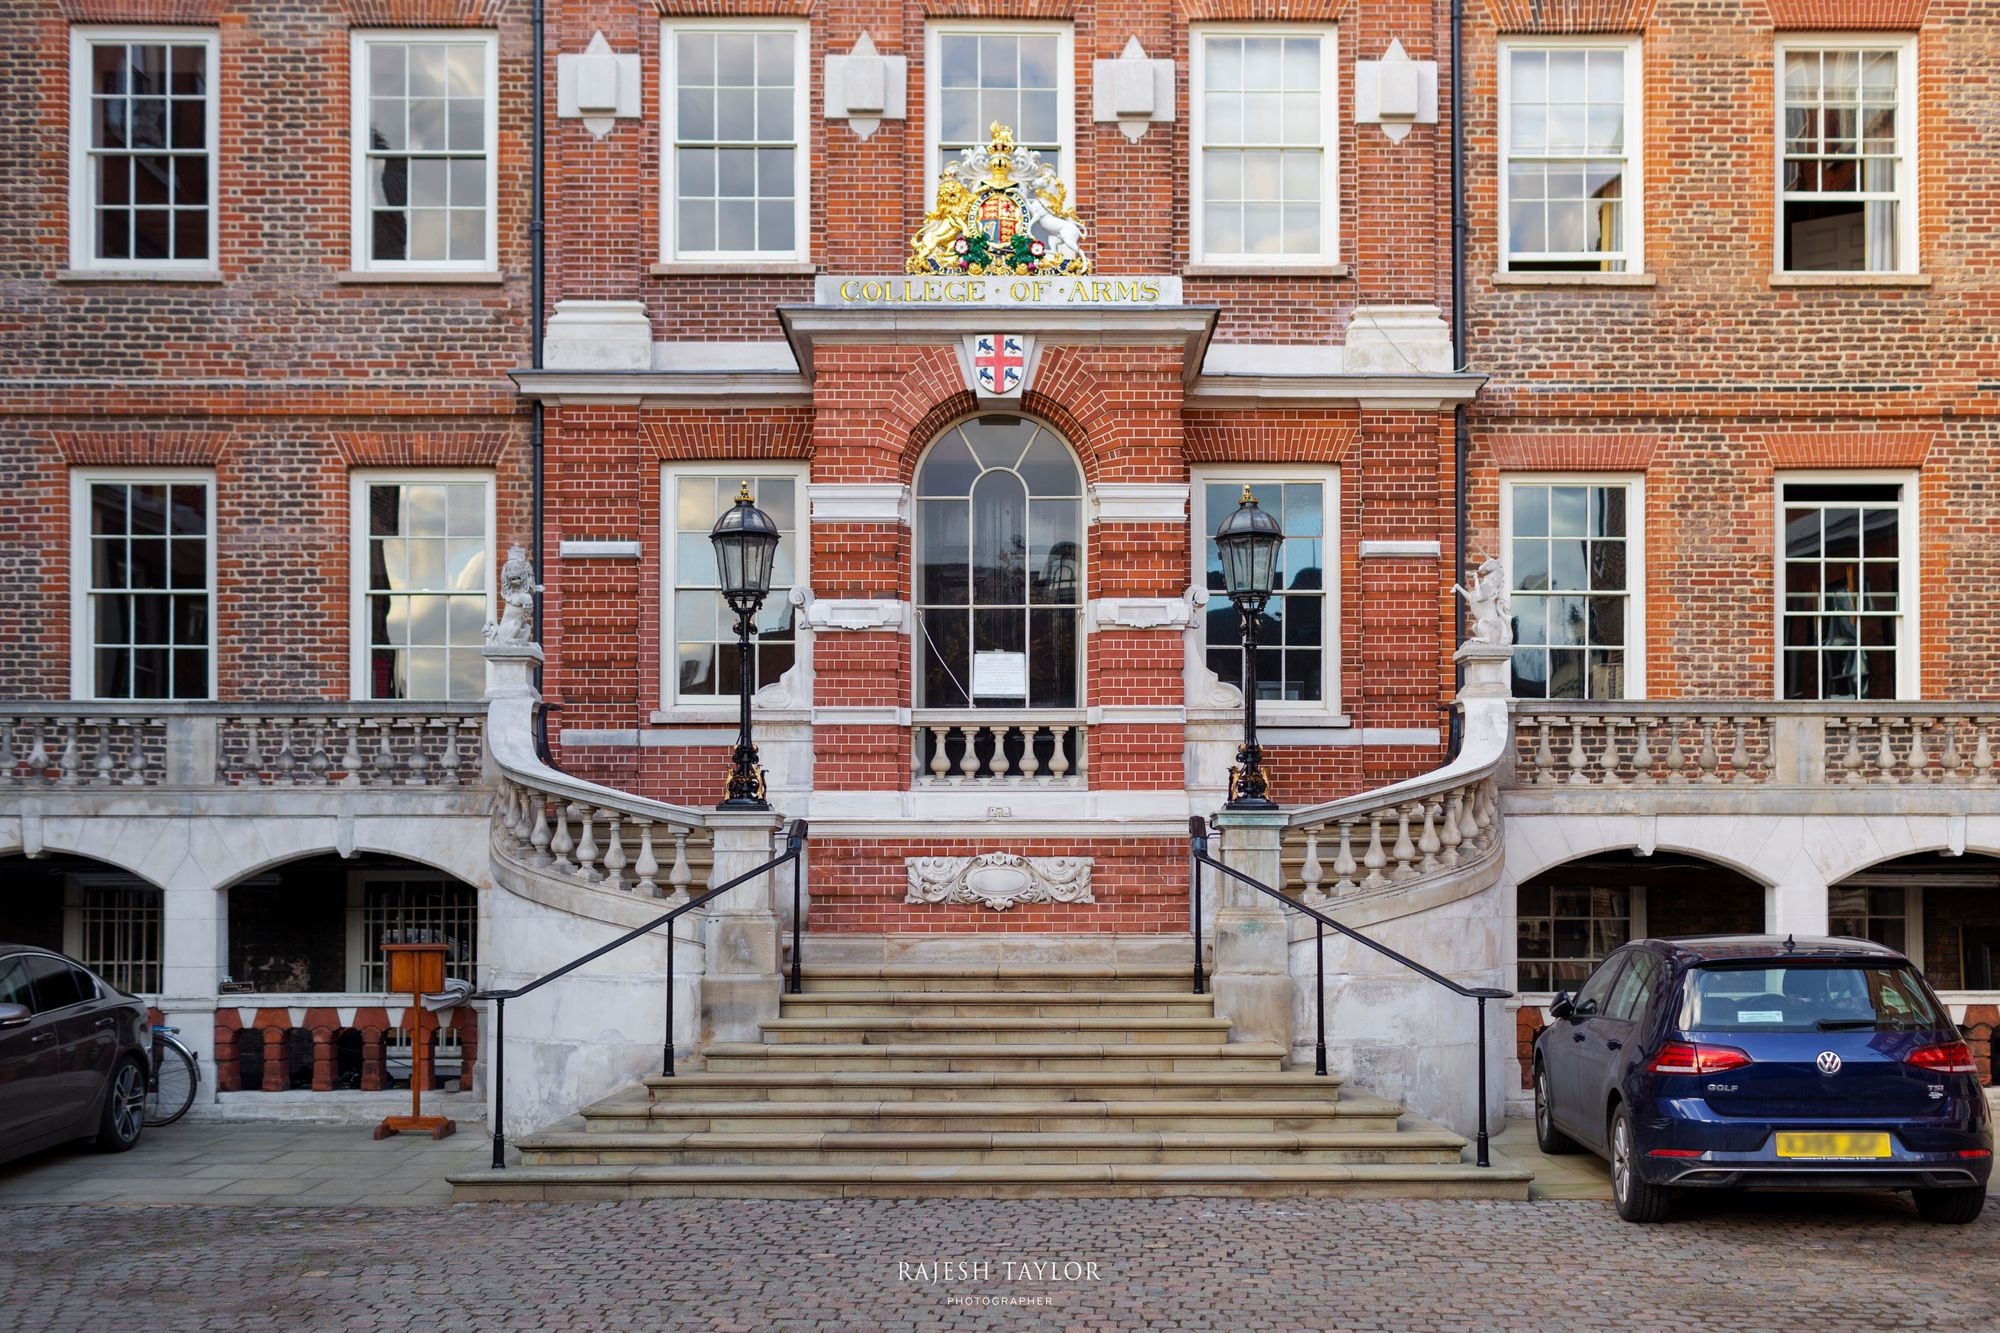 College of Arms © Rajesh Taylor